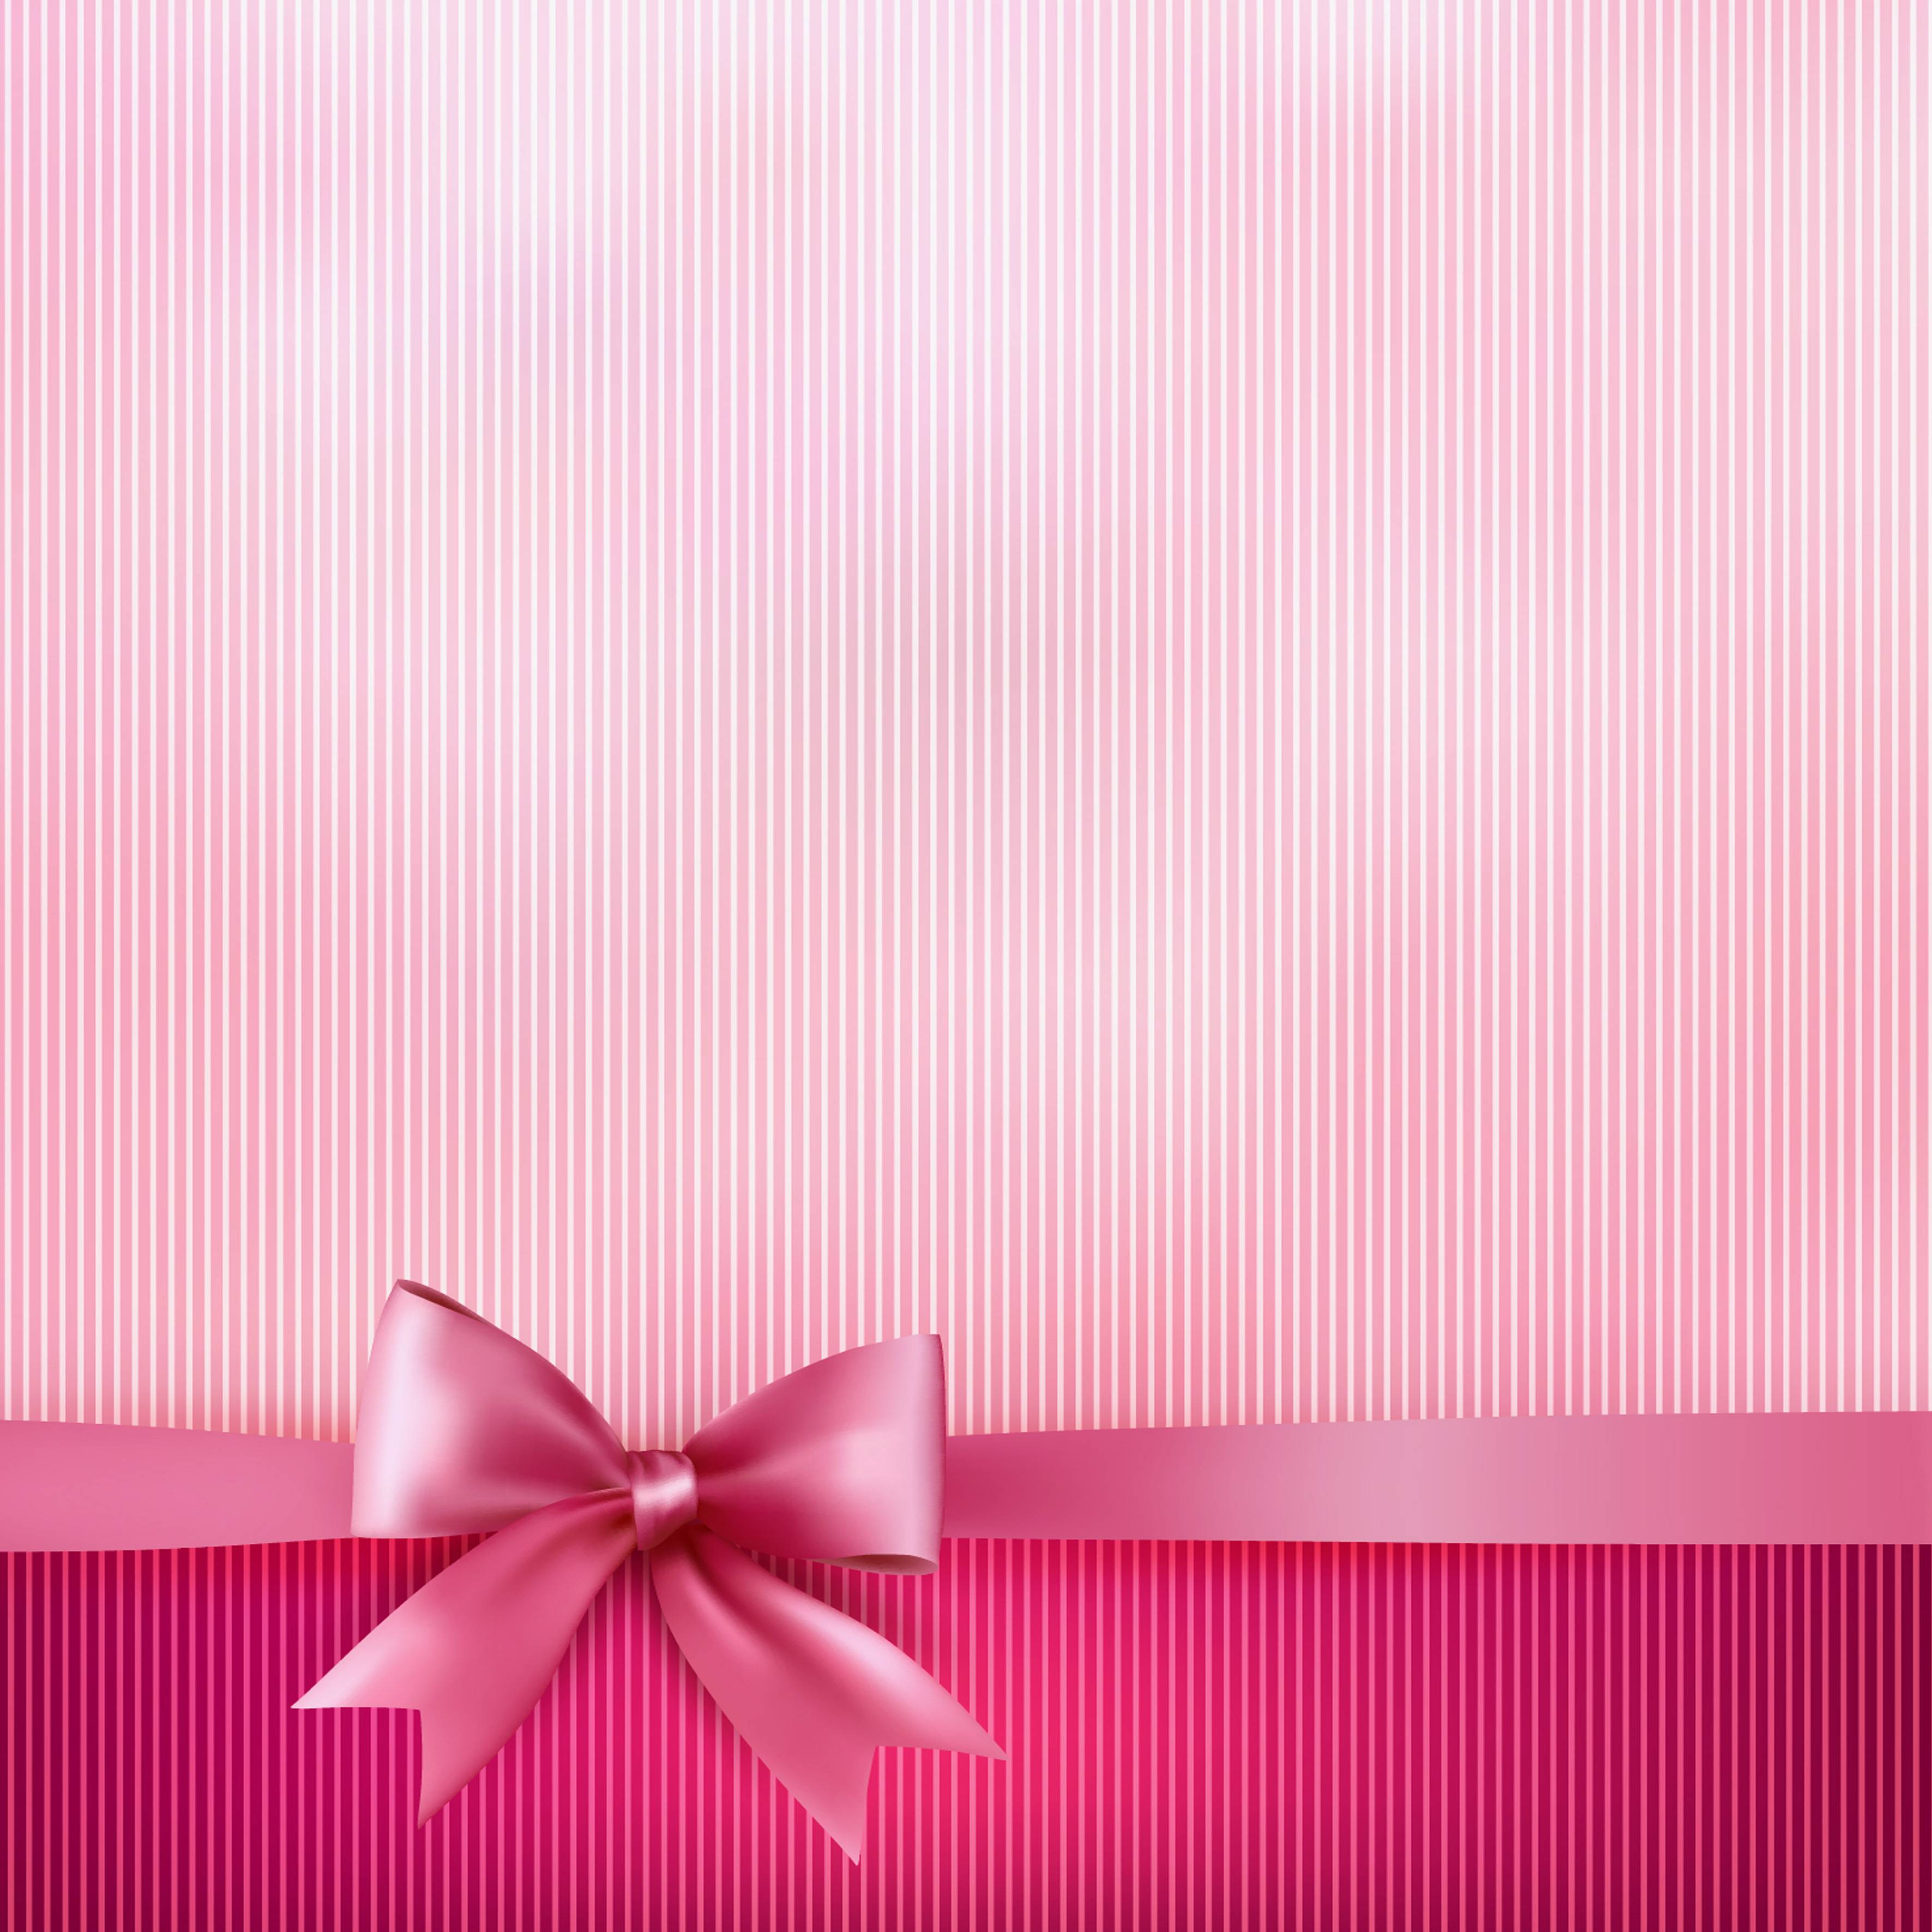 Backgrounds Pink